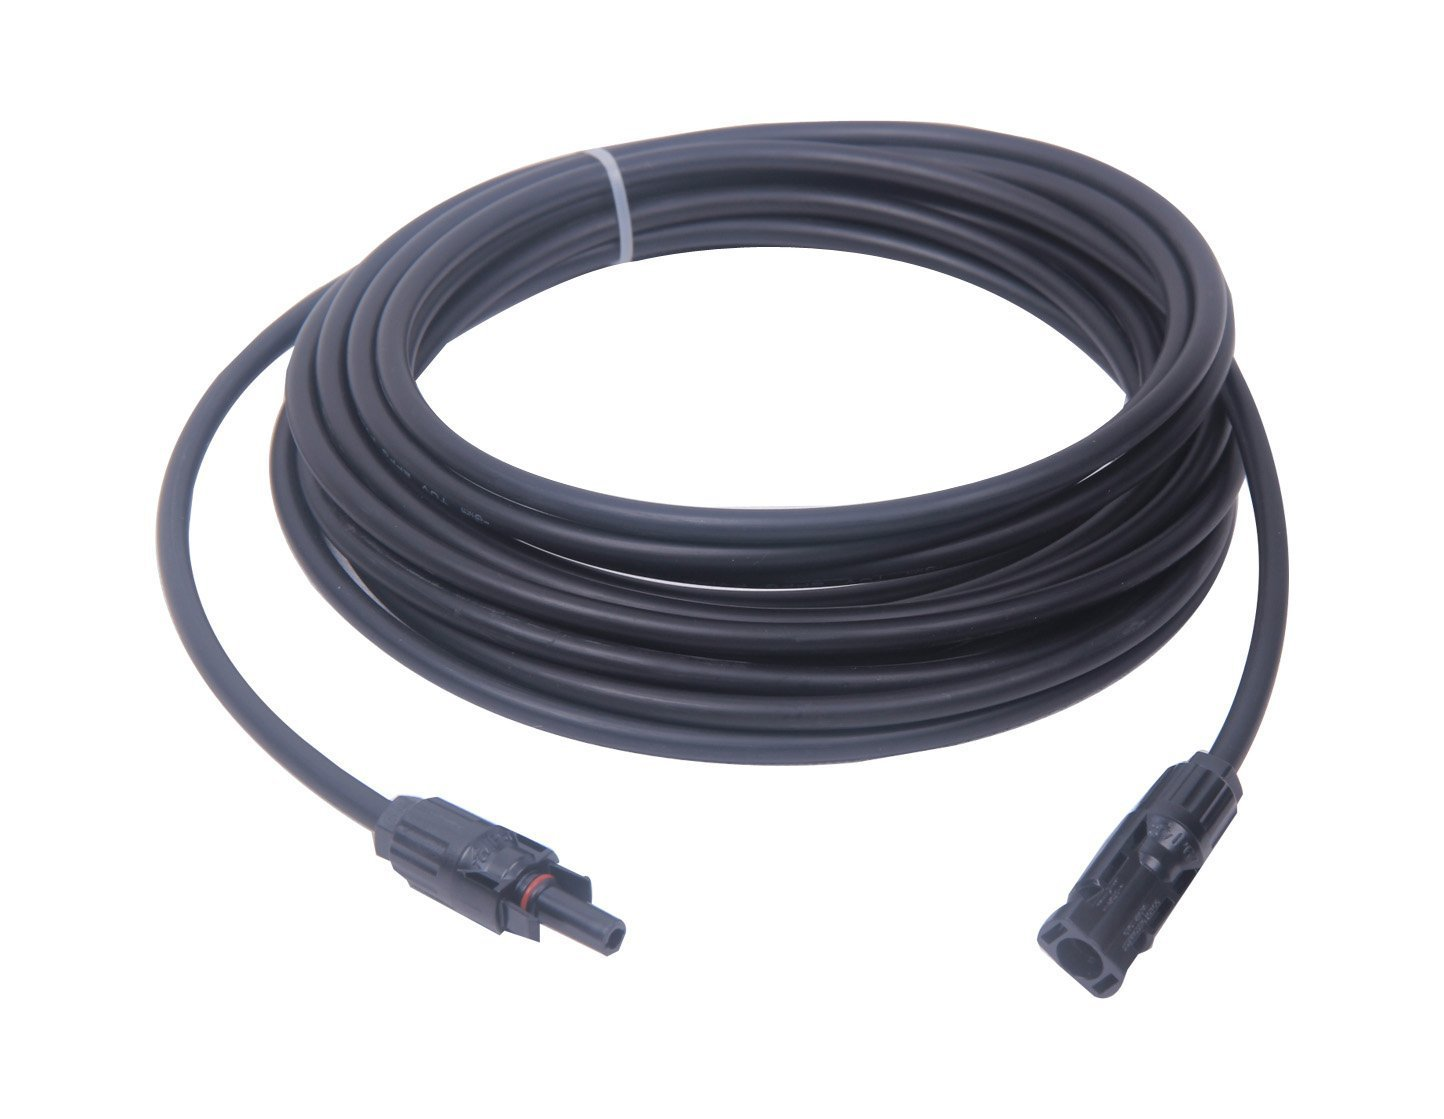 Amazon.com : Solar Cable, MC4 connectors, Copper 10 AWG 19 Strand ...